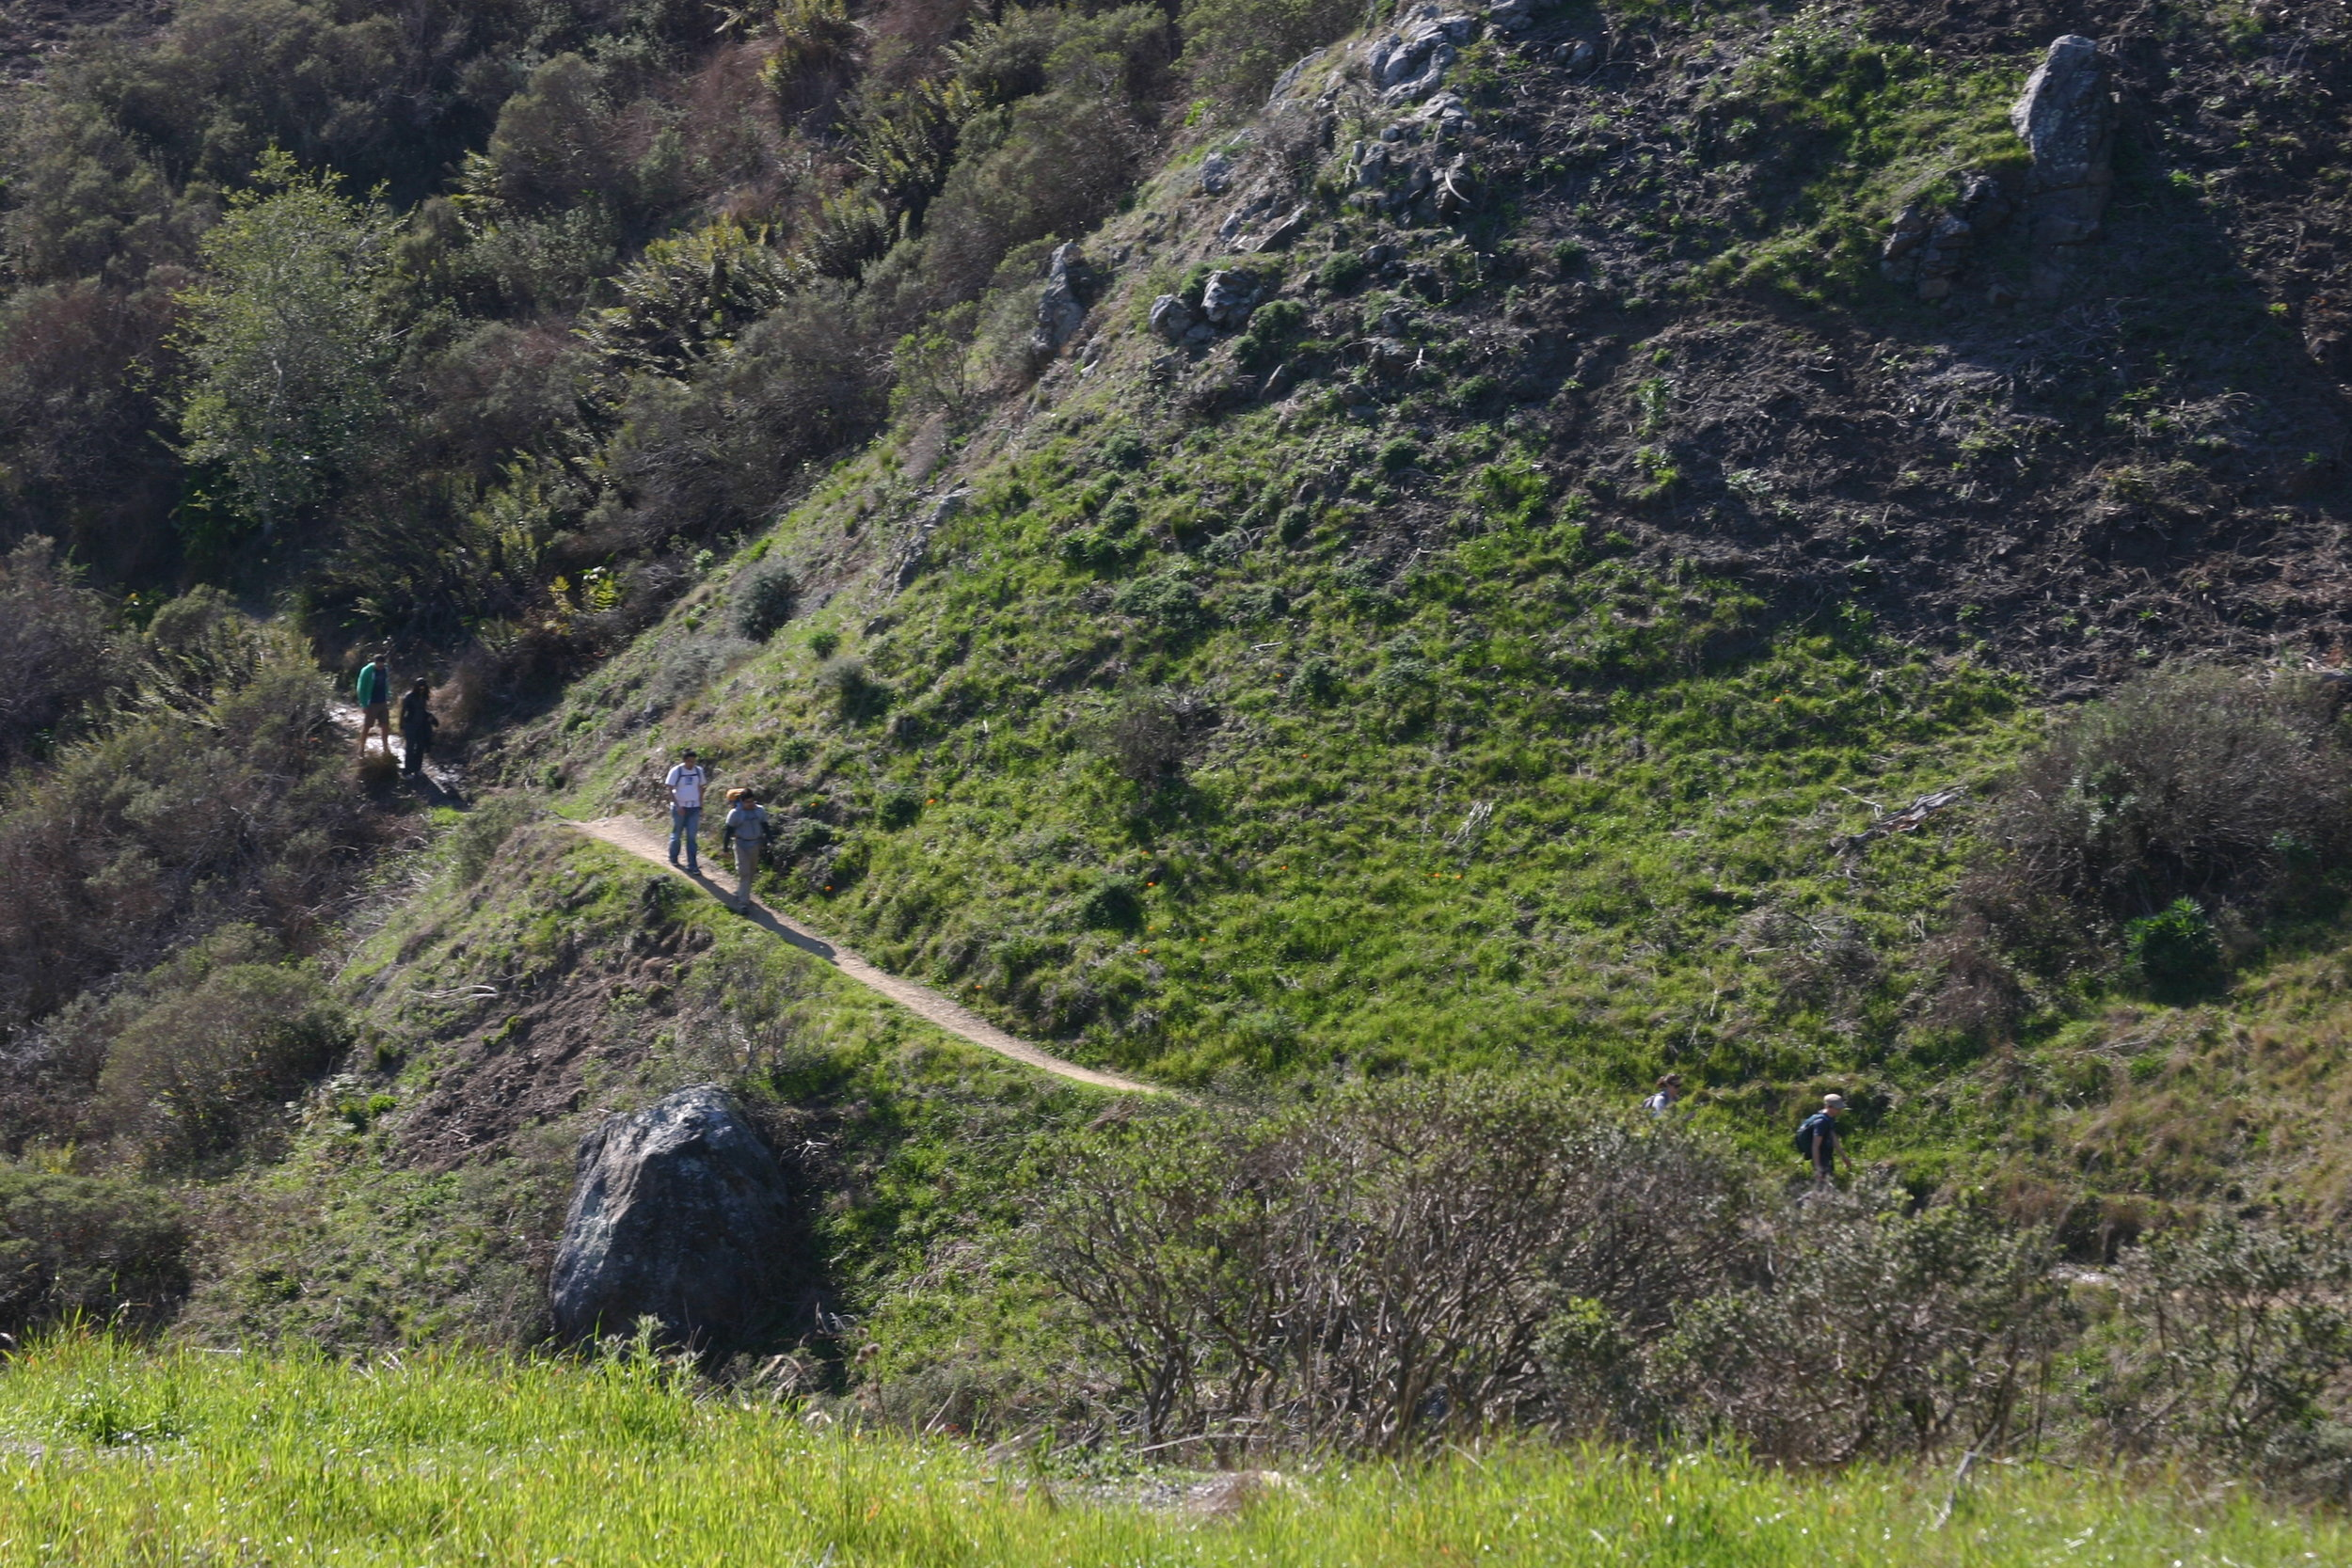 Slopes of Mt. Tam, Marin, California, February 2012, Photo Credit: Kate Gallery